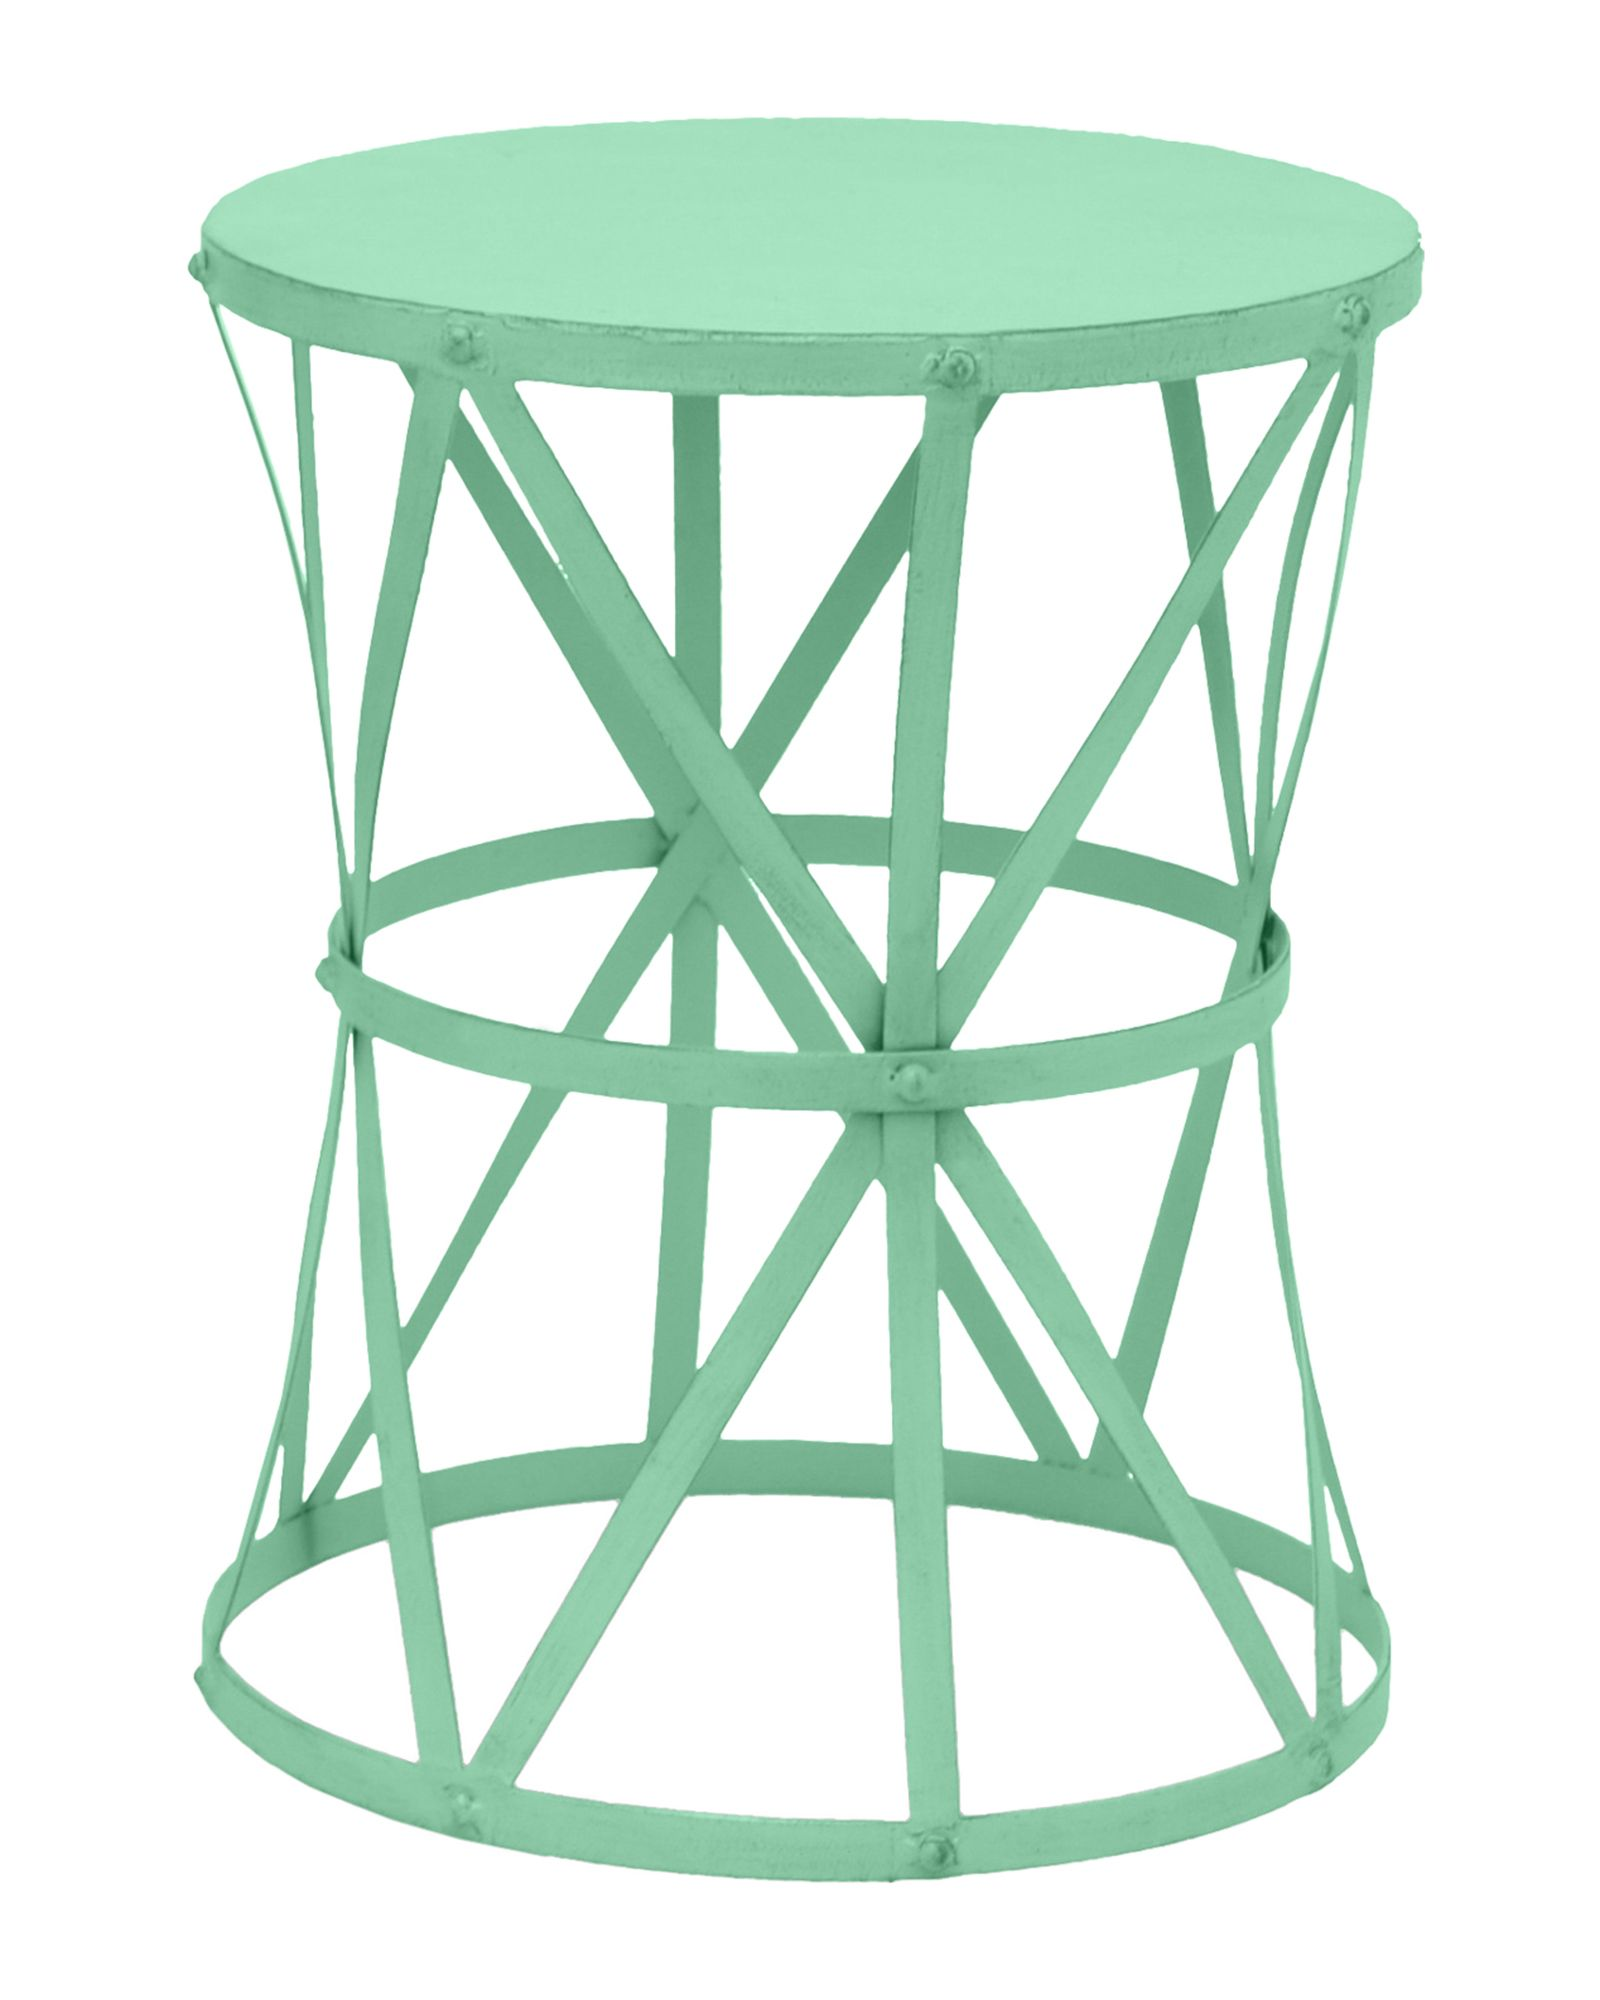 mint metal accent table home garden green famous designer patio furniture toronto clearance ikea box shelves espresso color coffee piece chair set ethan allen windsor chairs